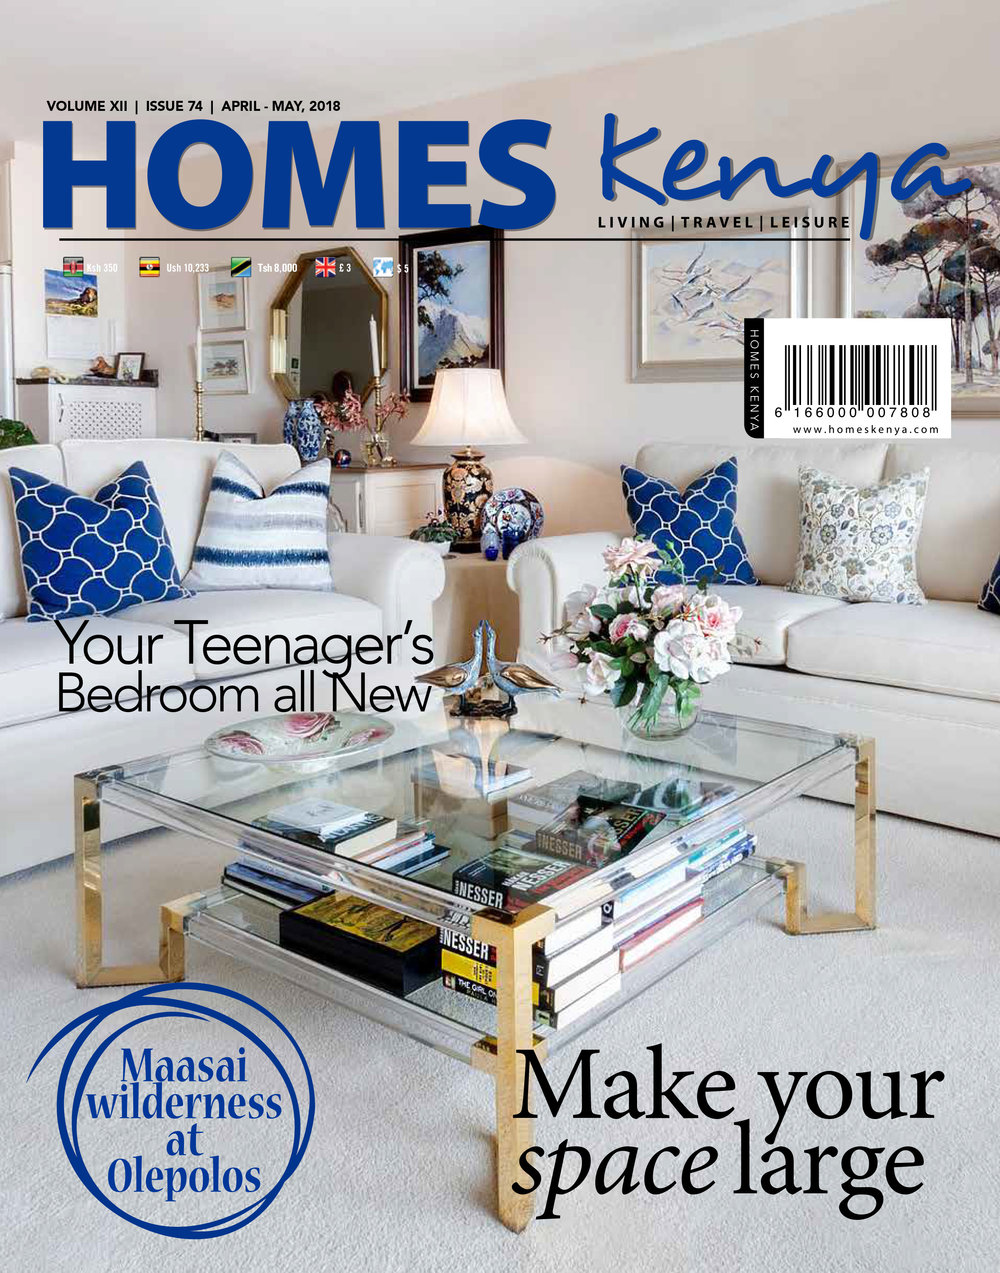 homes kenya - april 2018